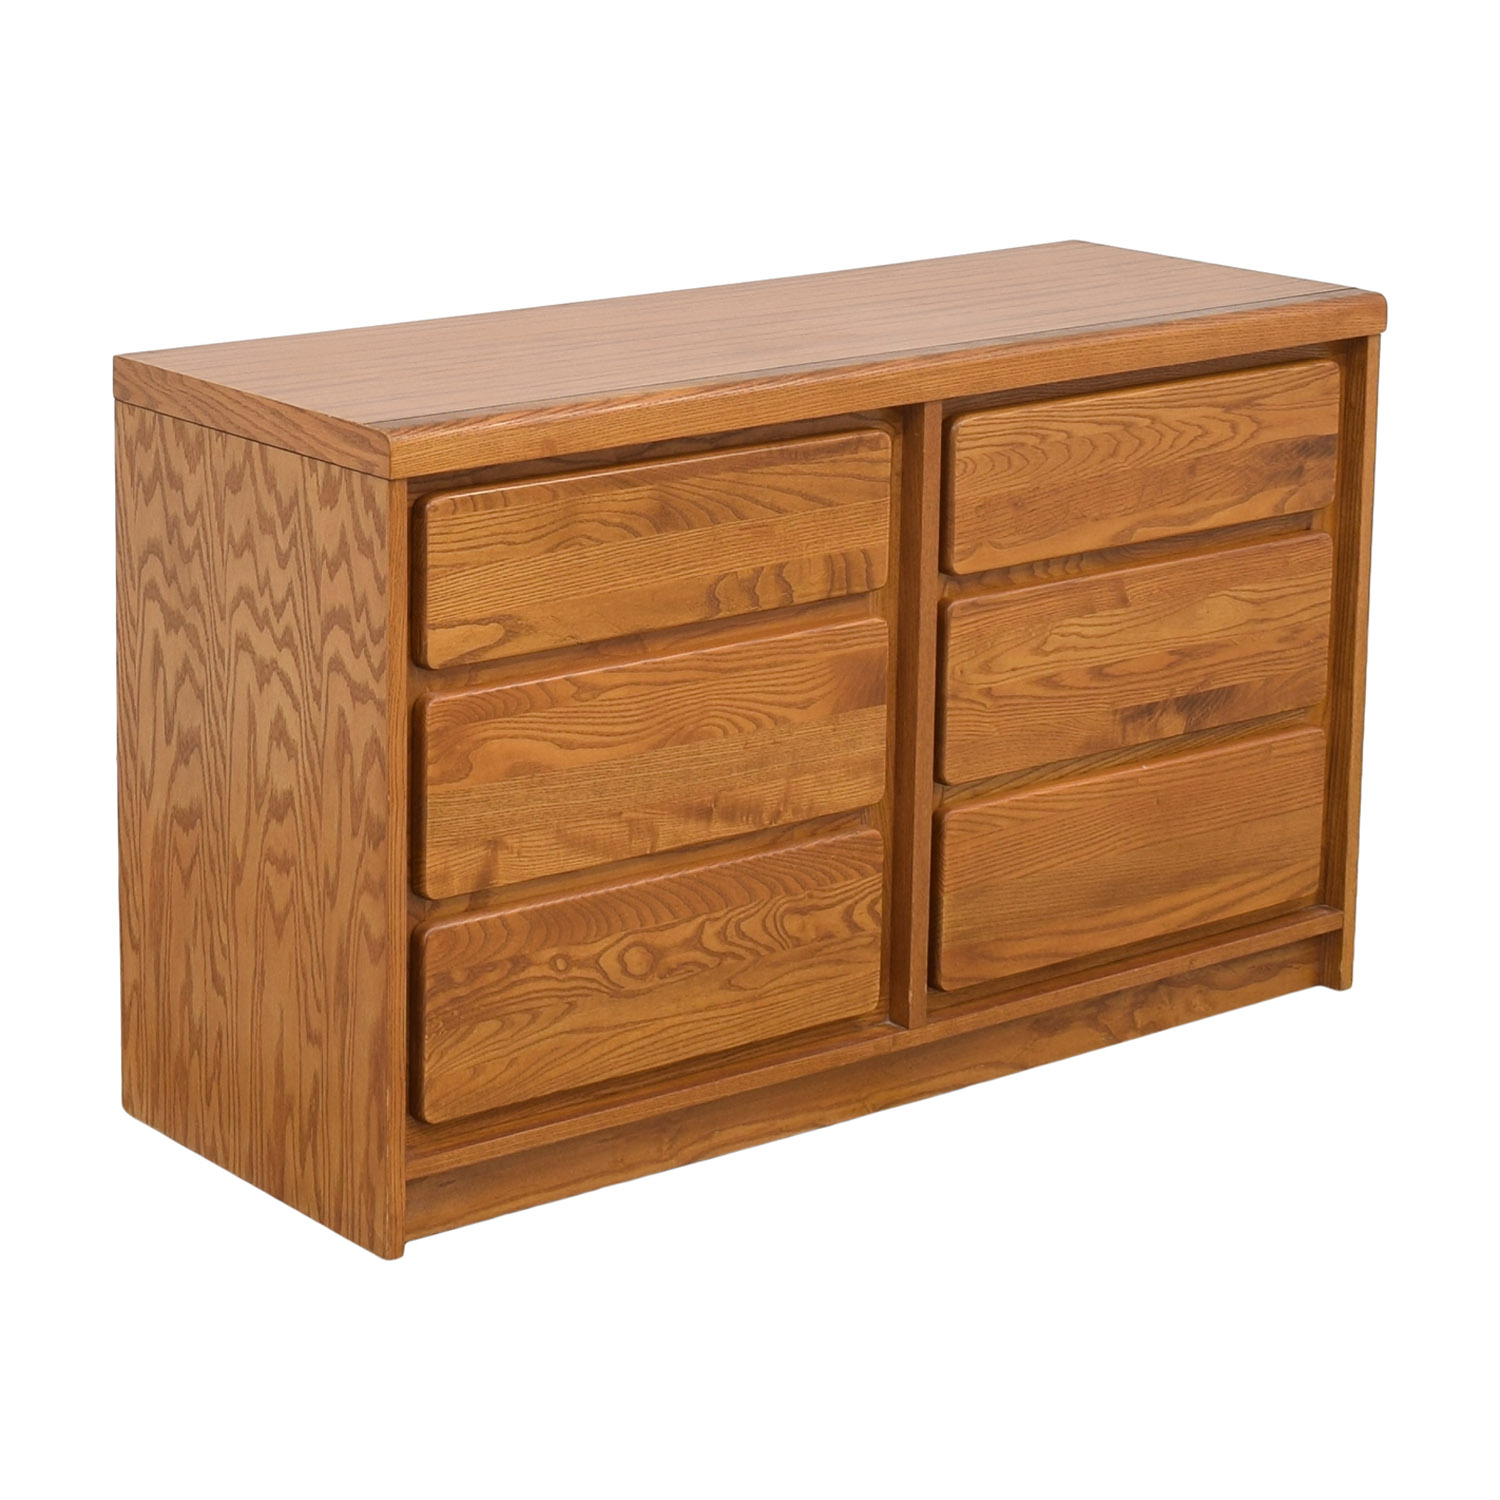 Childcraft Childcraft Double Dresser coupon